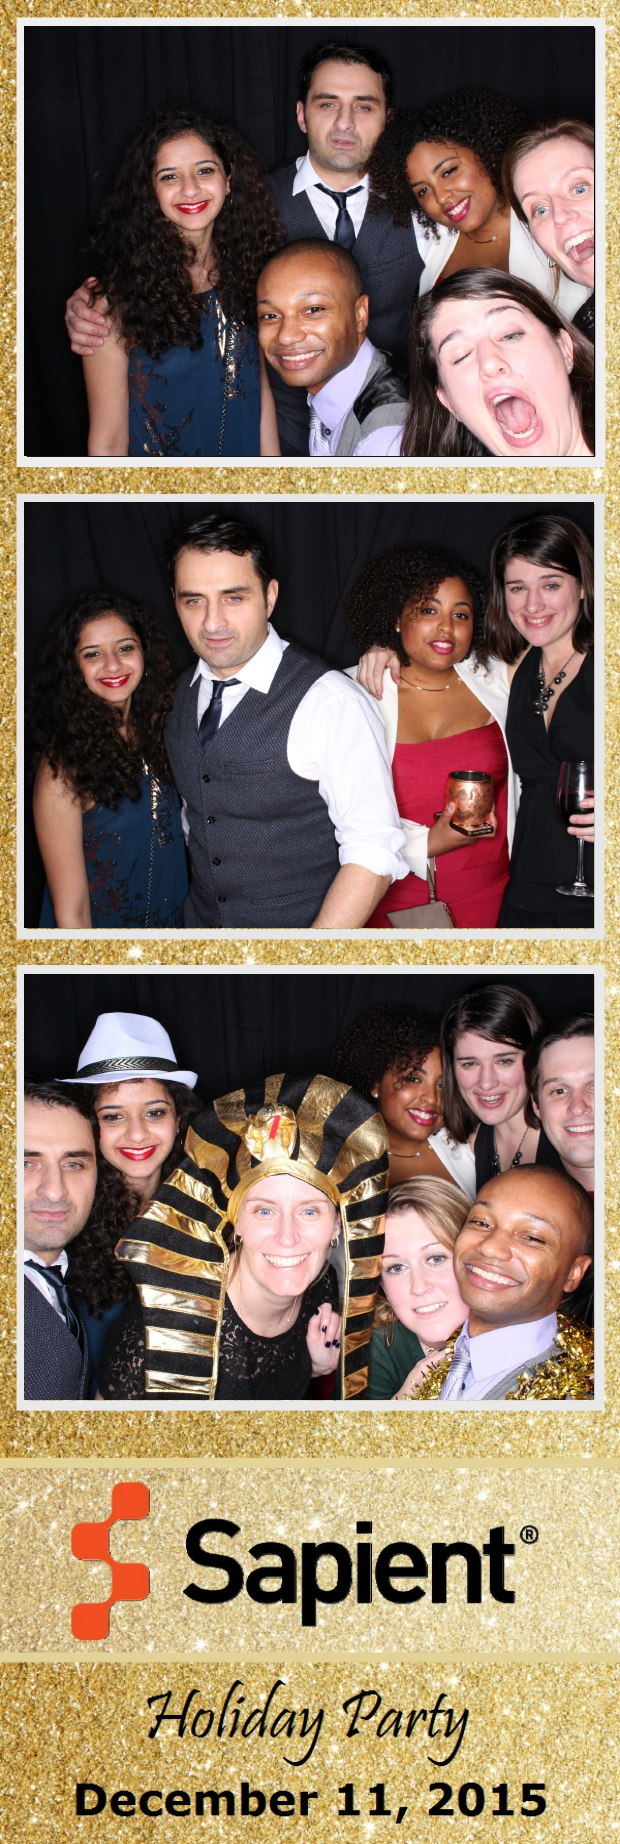 Guest House Events Photo Booth Sapient Holiday Party (86).jpg